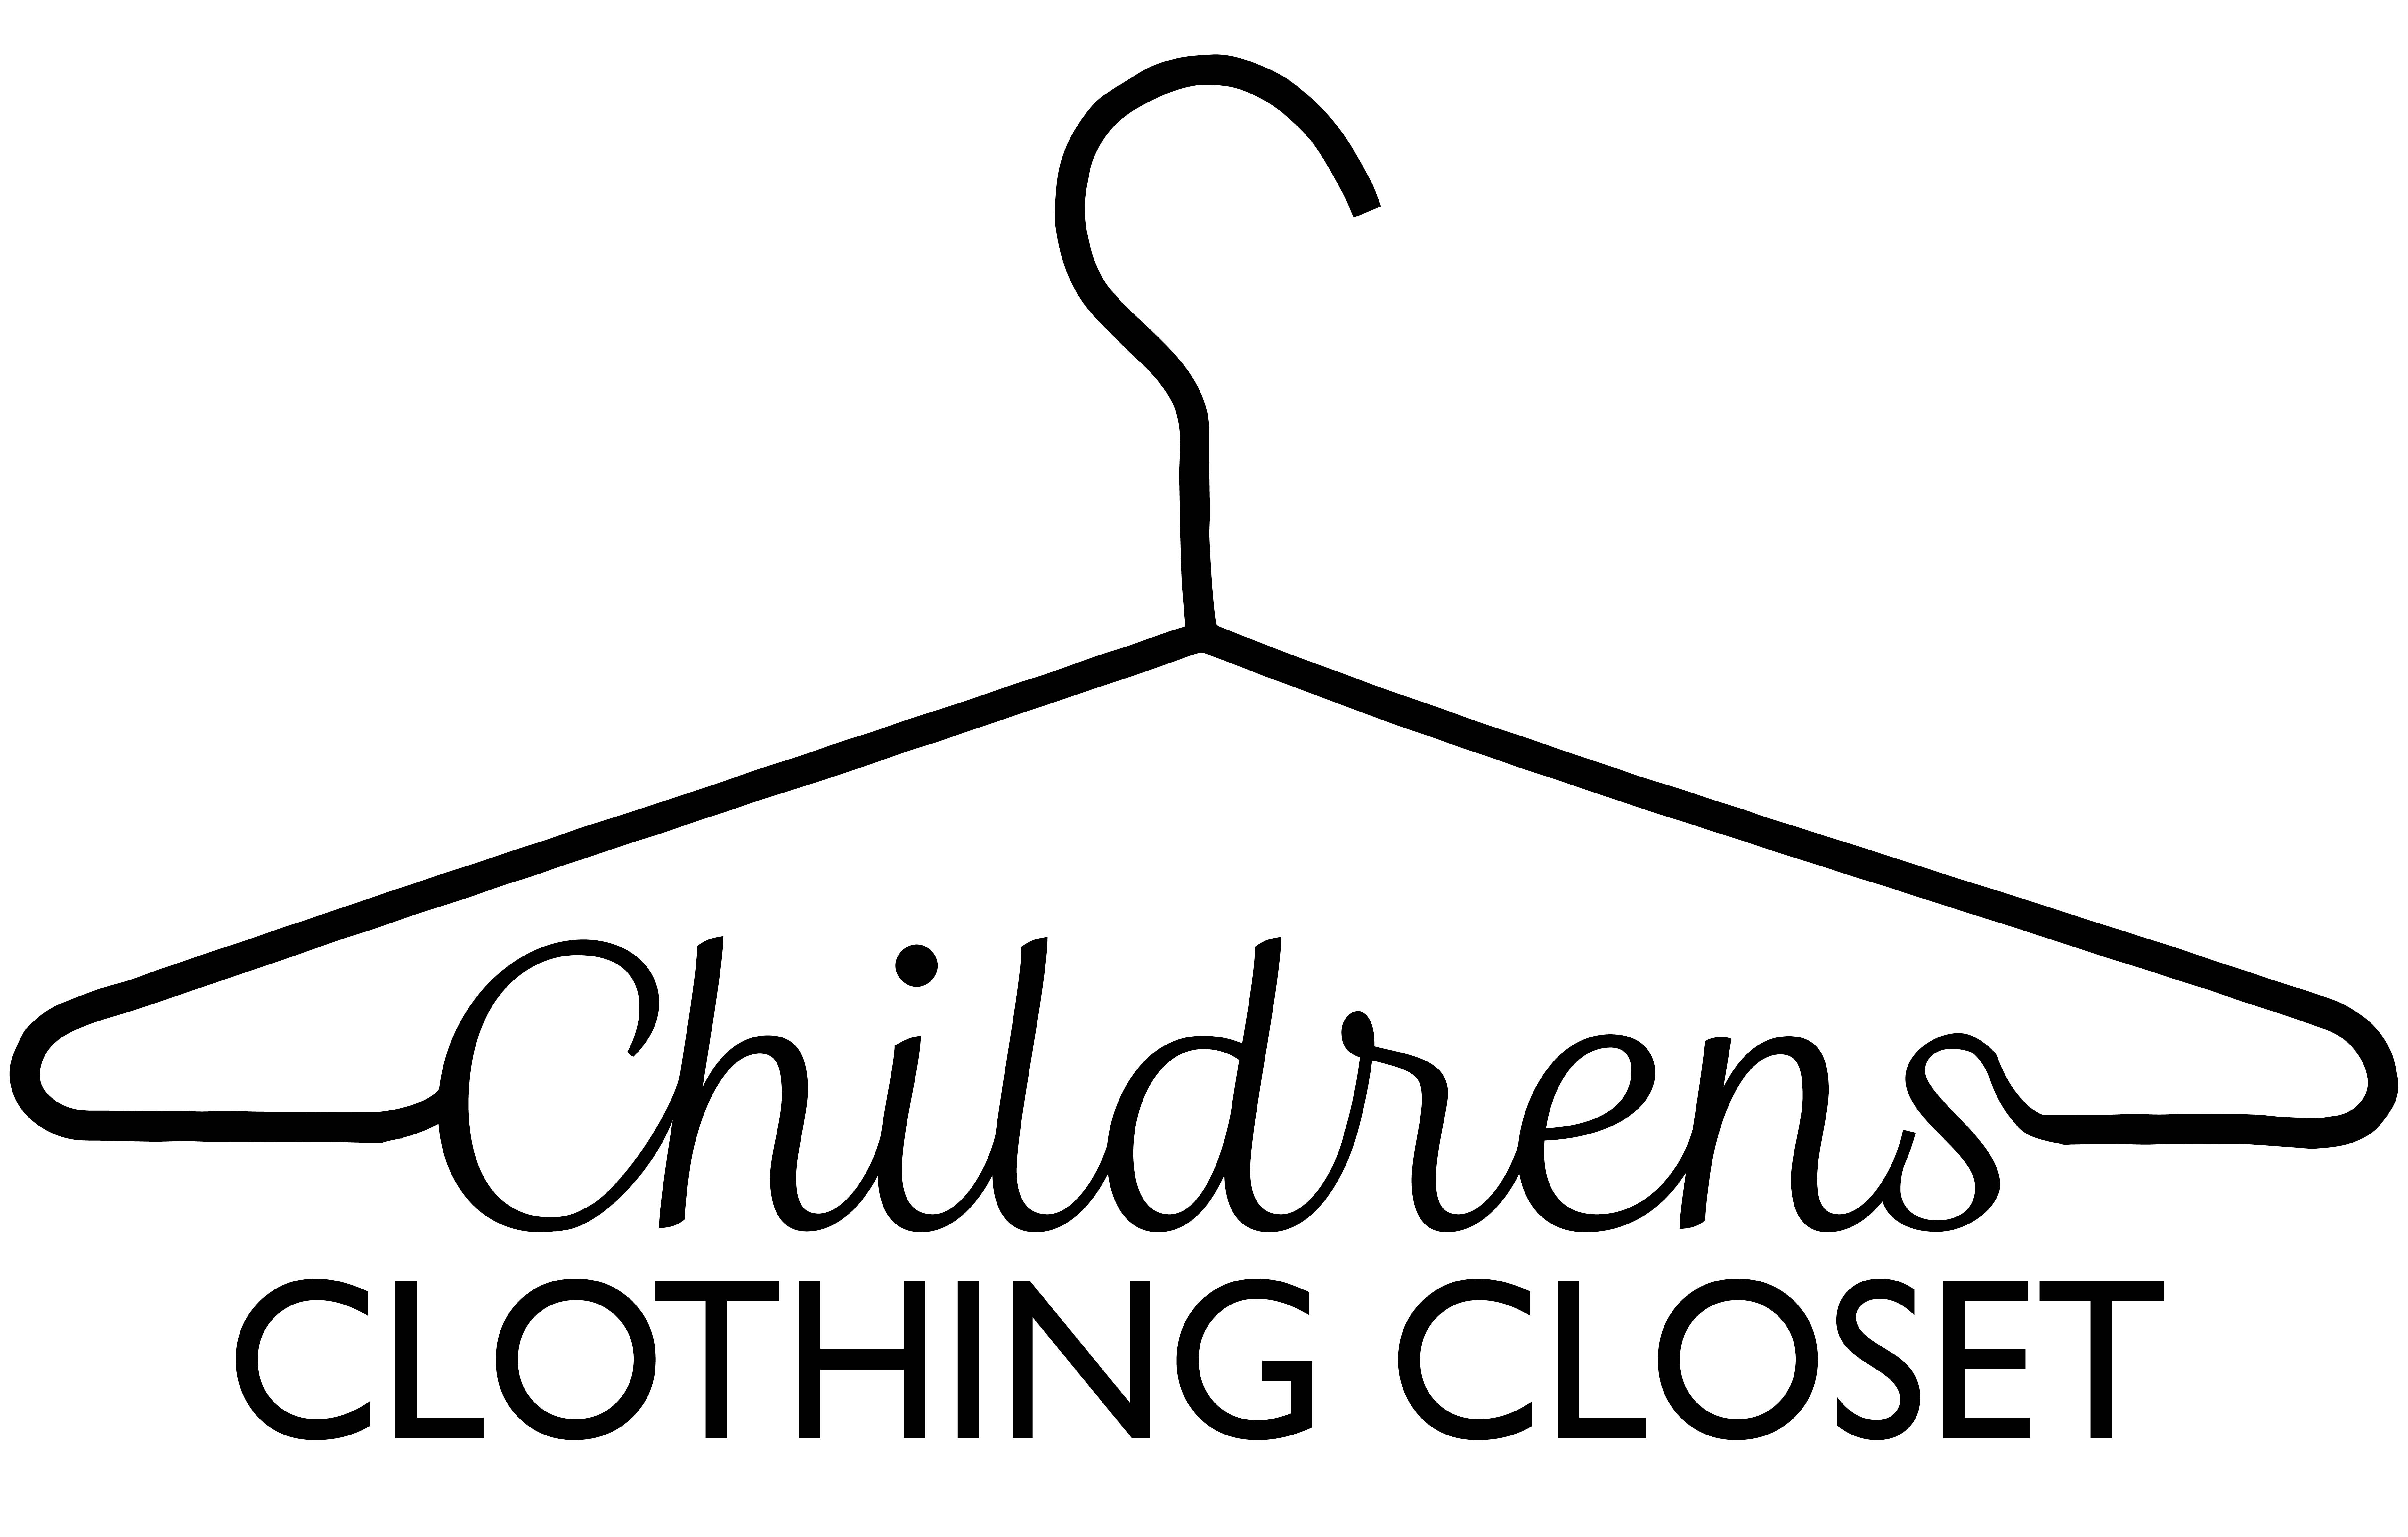 Childrens Closet Logo Clothing